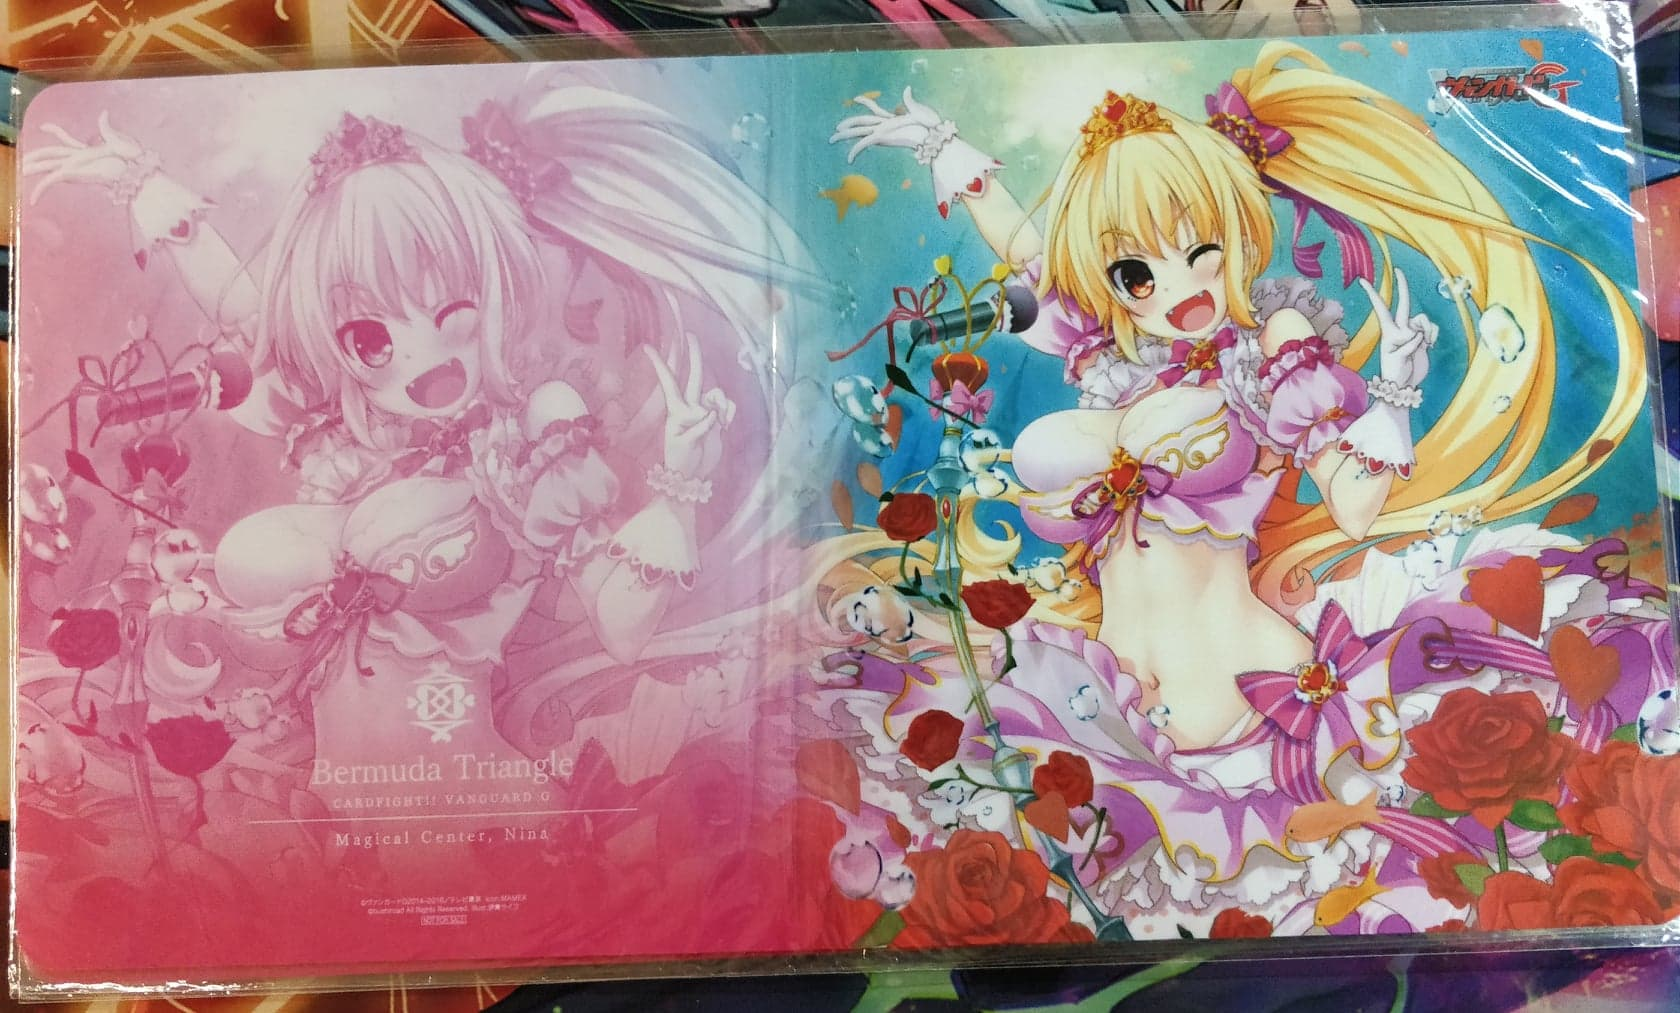 Bermuda Triangle Playmat Magical Center, Nina